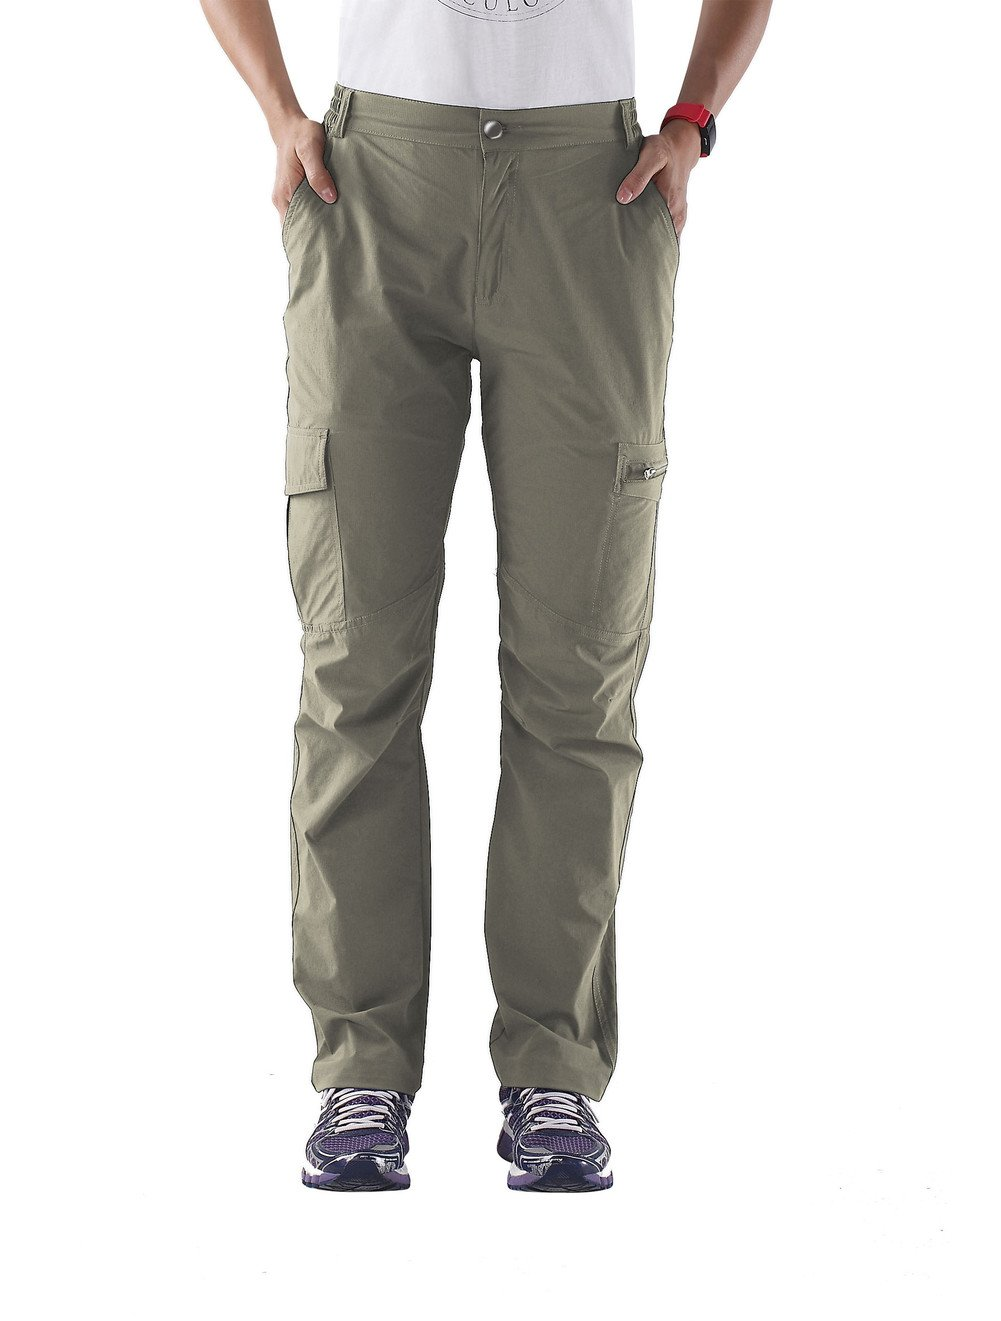 Nonwe Women's Quick Drying Water-Resistant Outdoor Trousers Khaki M/29 Inseam by Nonwe